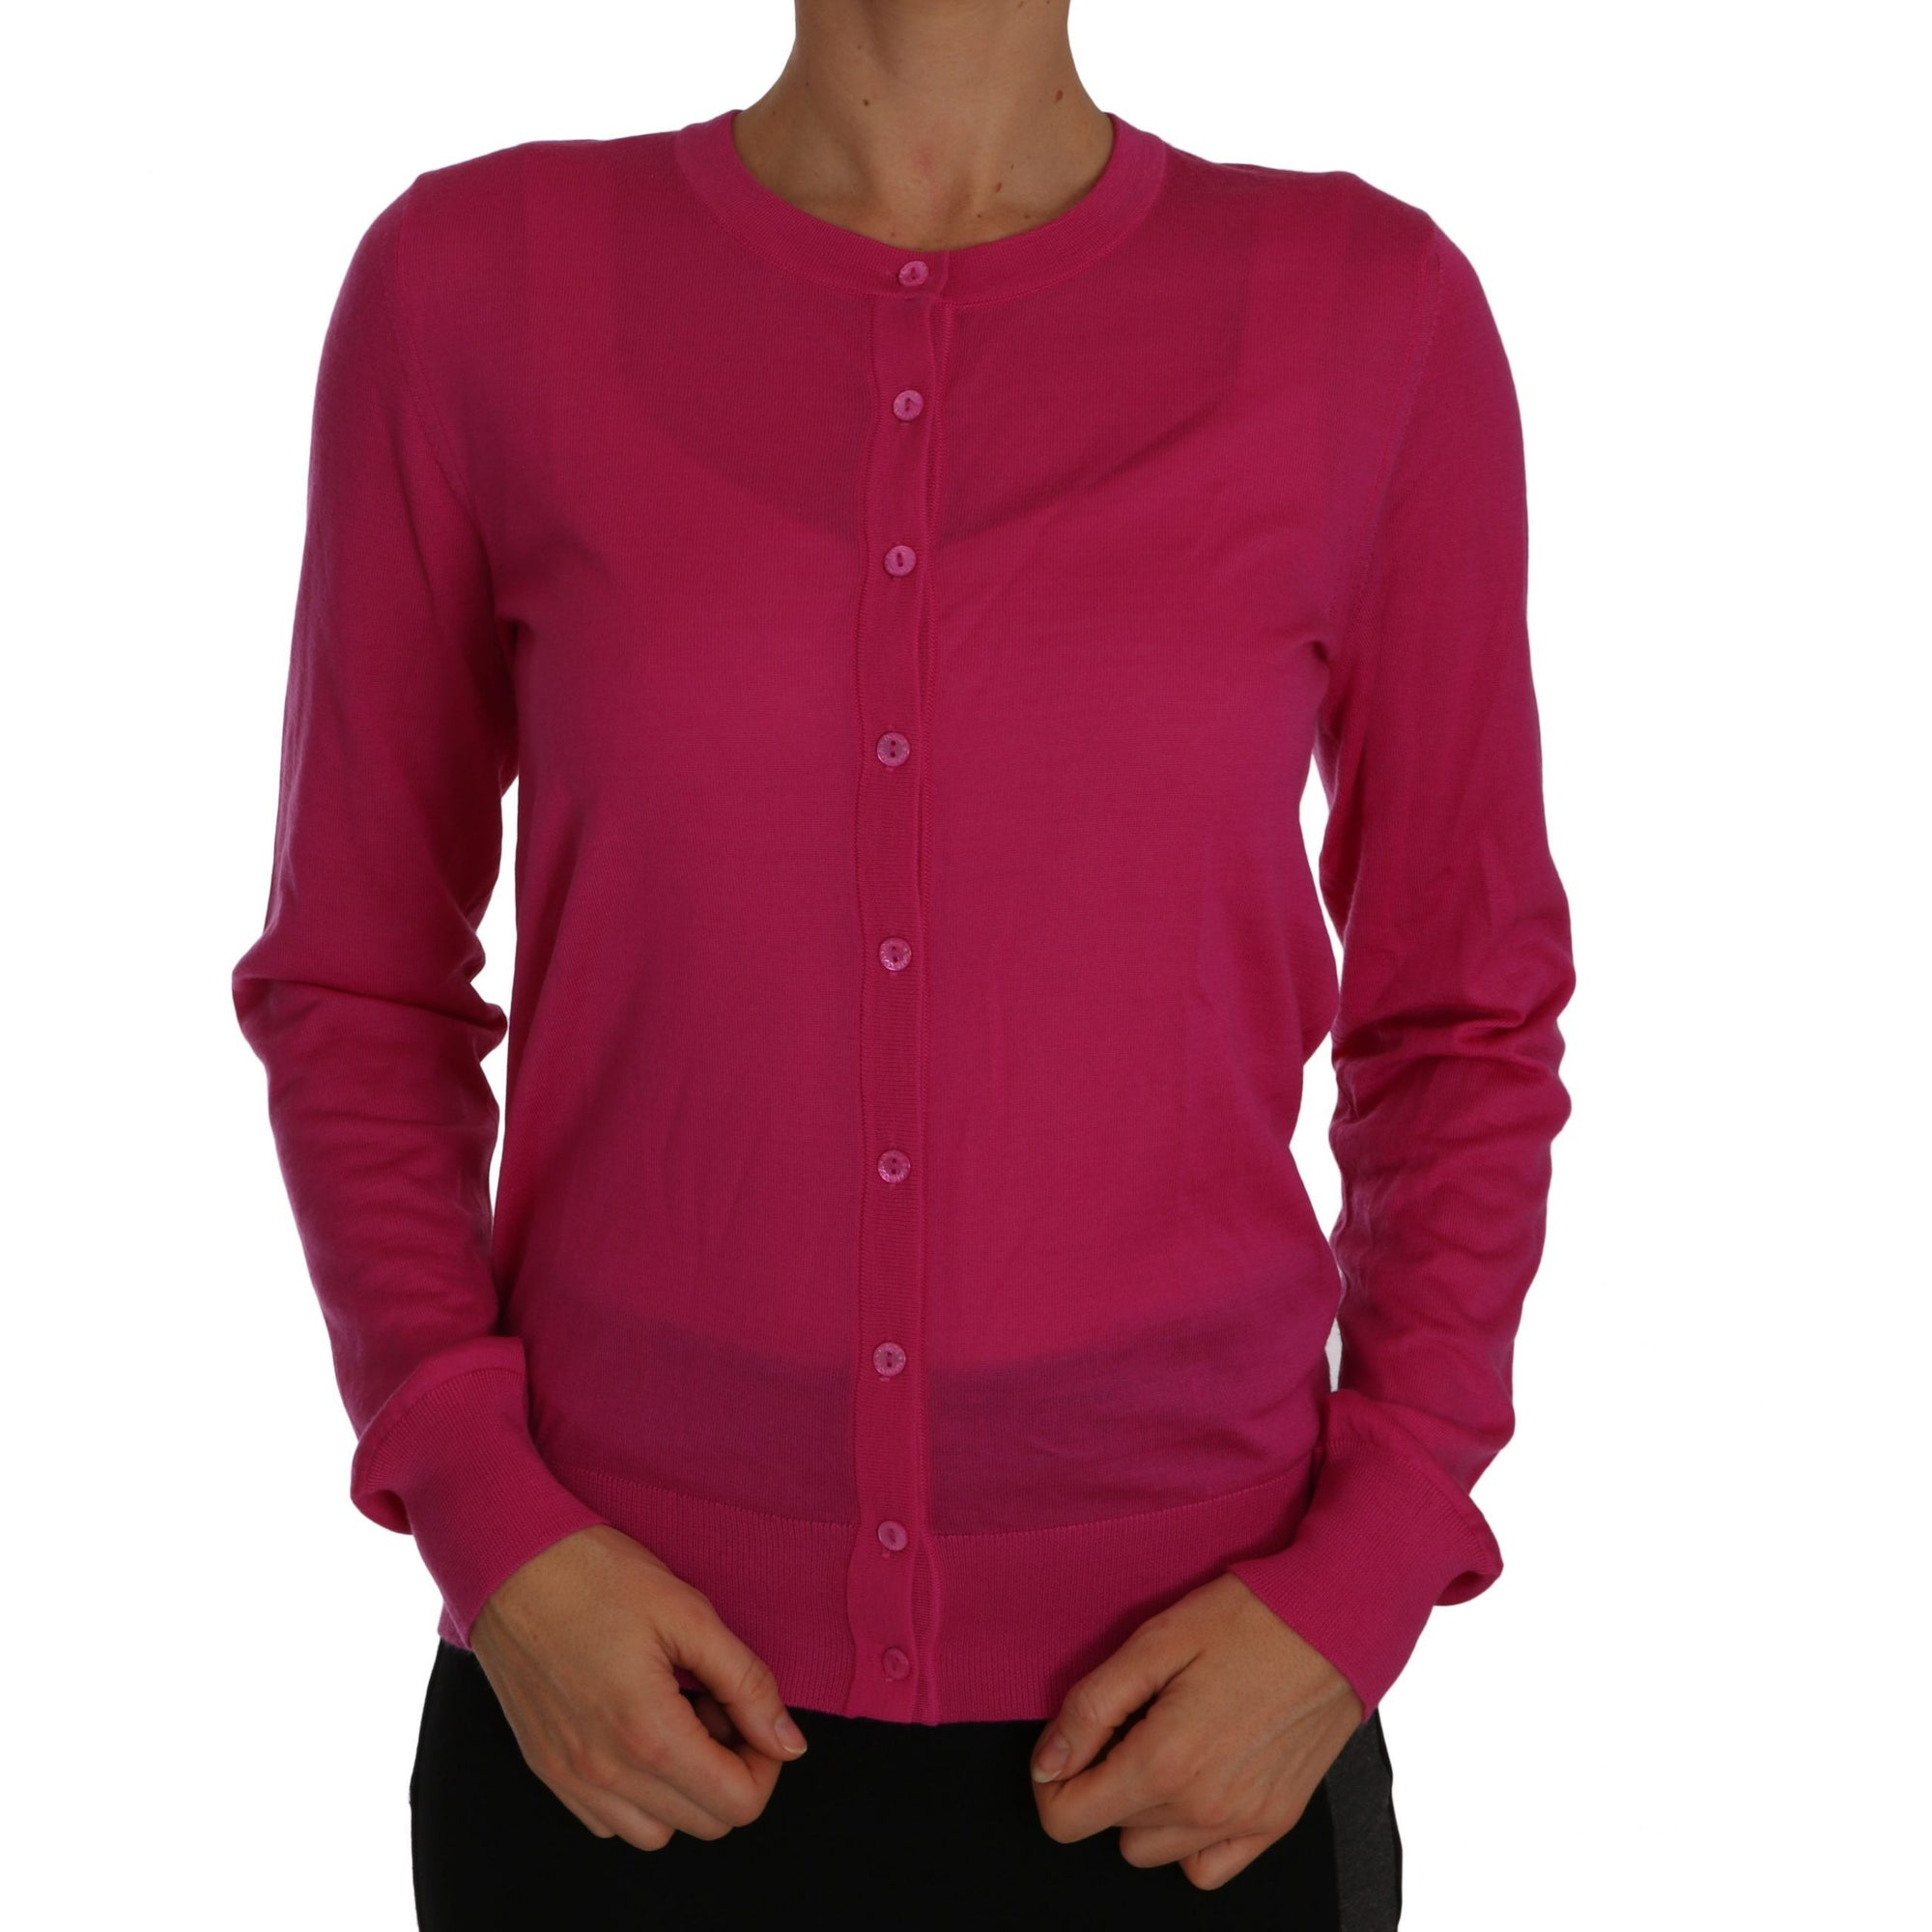 Pink Cashmere Cardigan Sweater Lightweight sweater